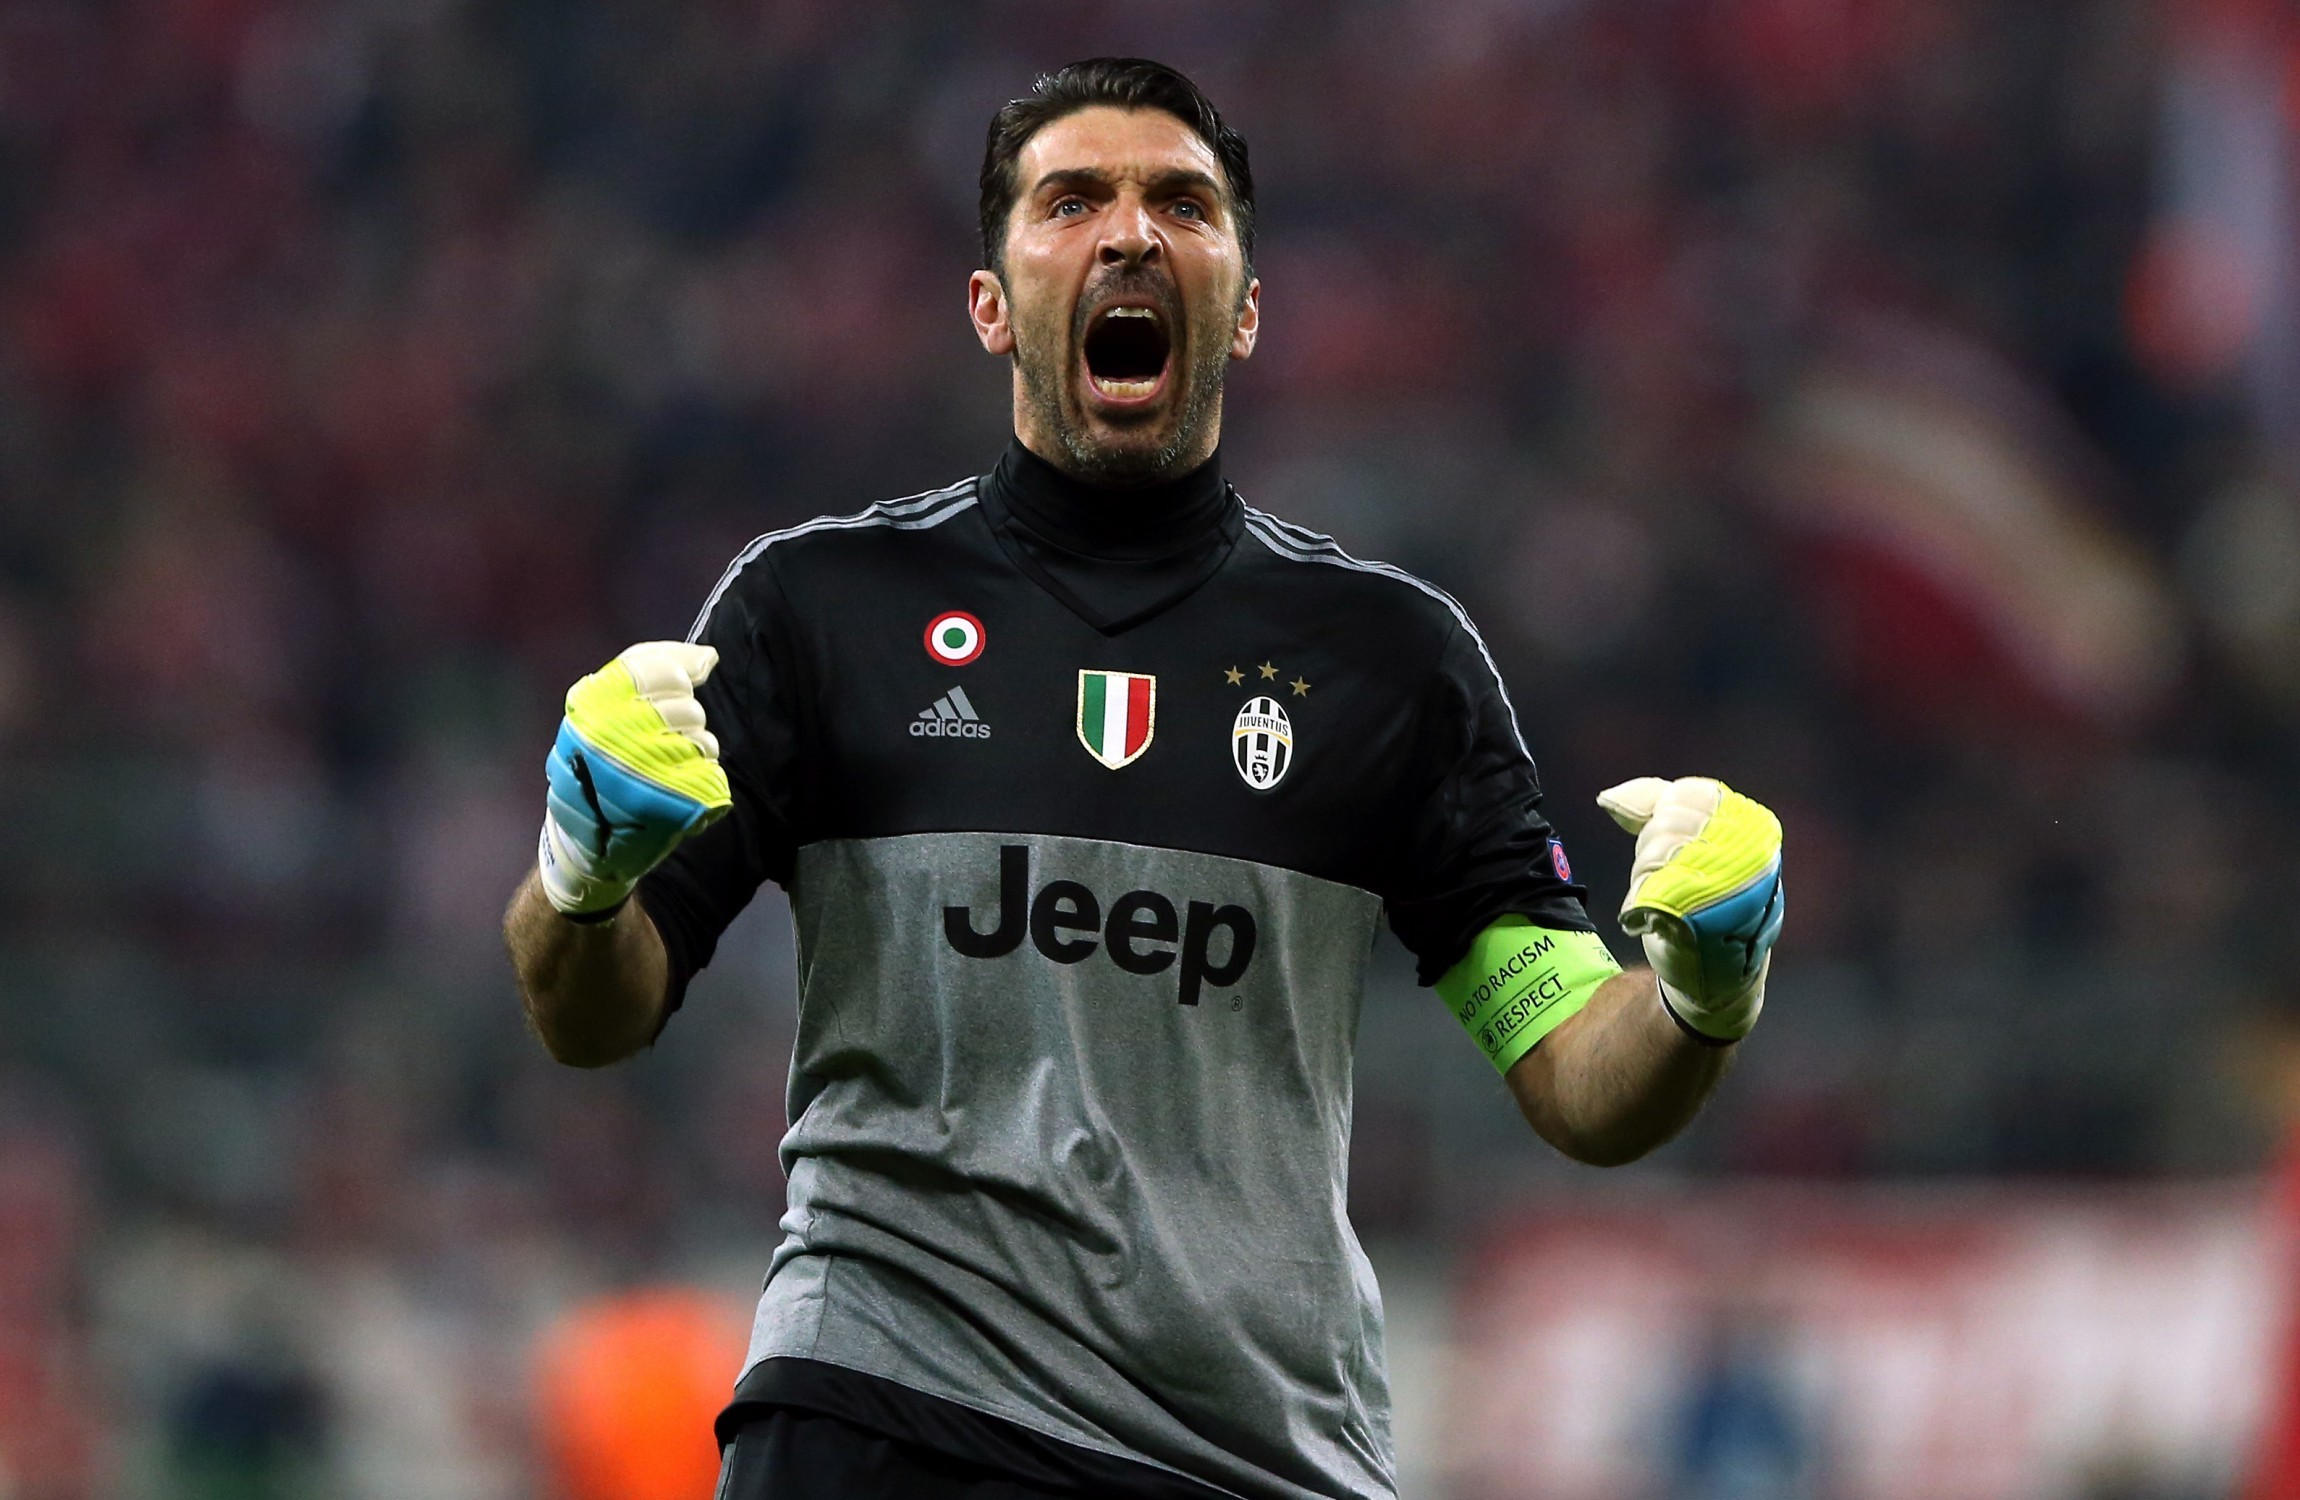 At 38 years old Gianluigi Buffon is still being pretty sensational